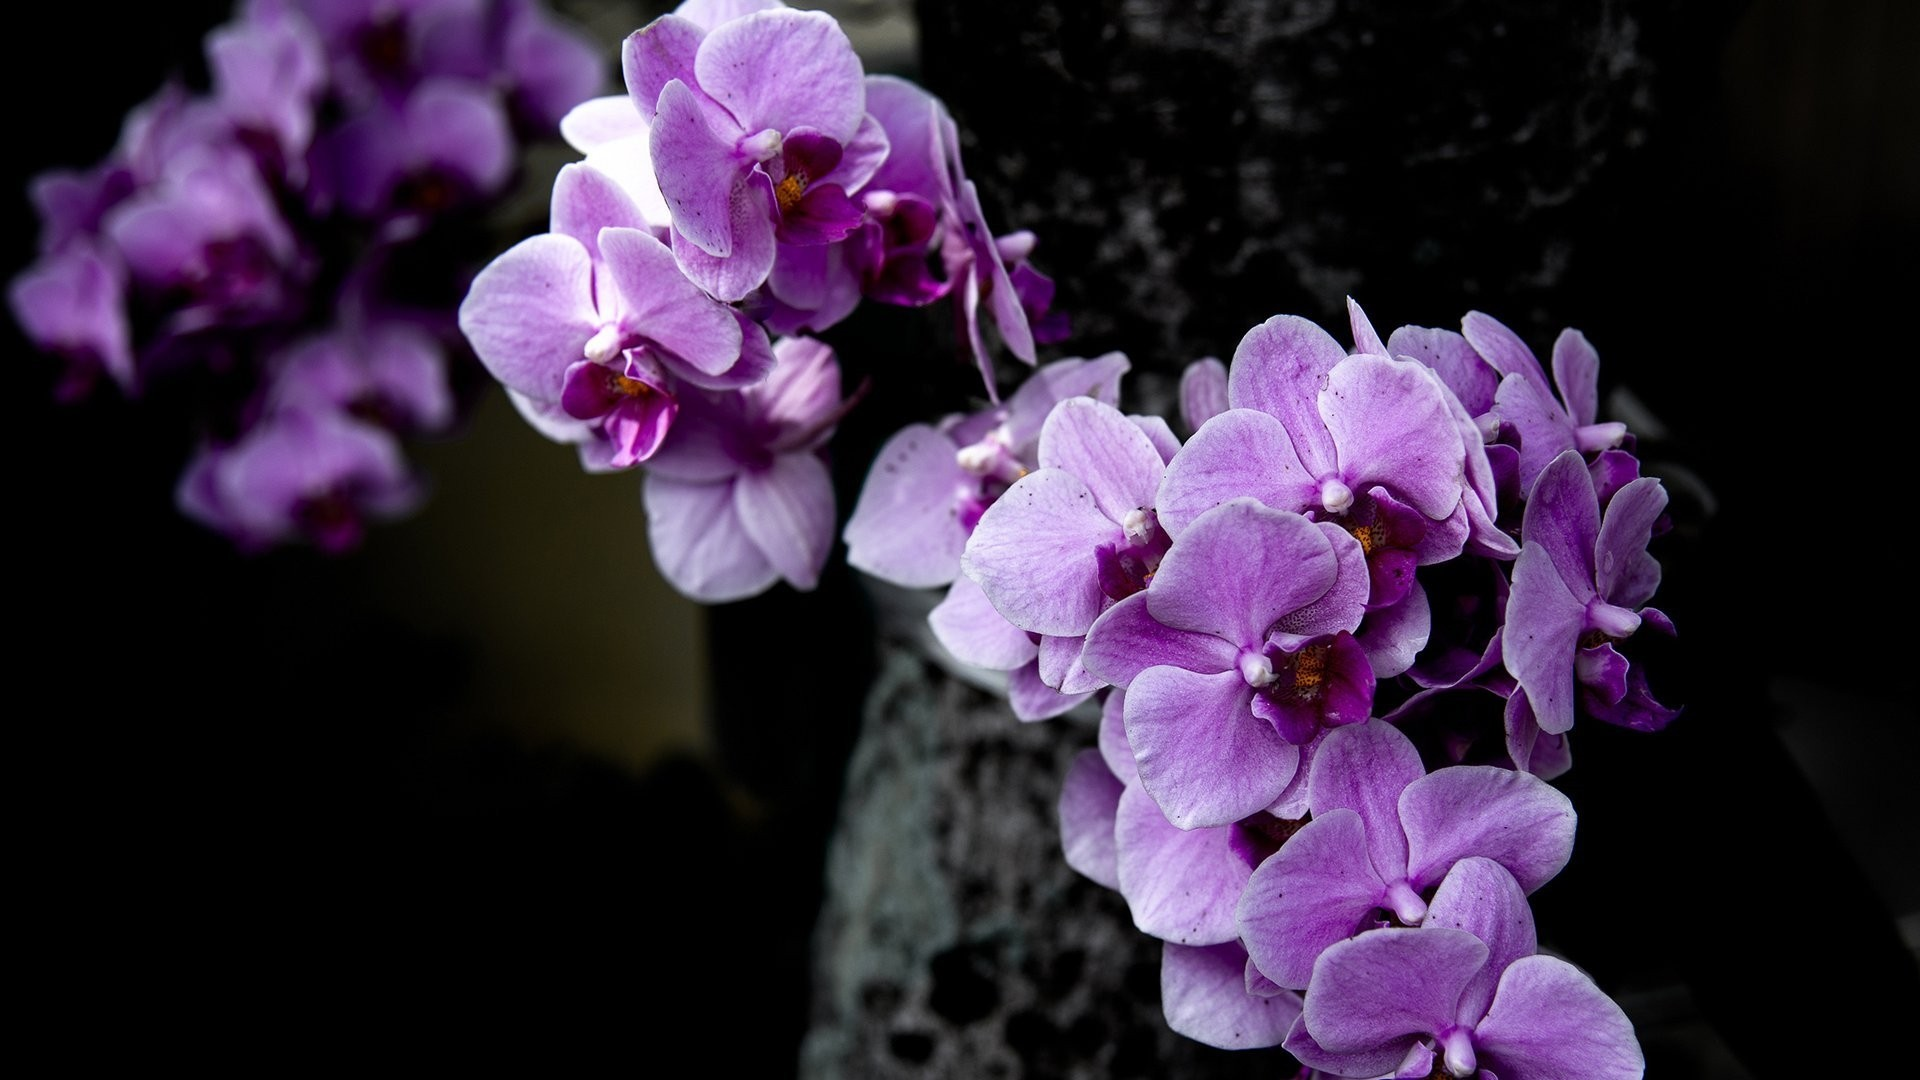 Orchid HD Wallpaper